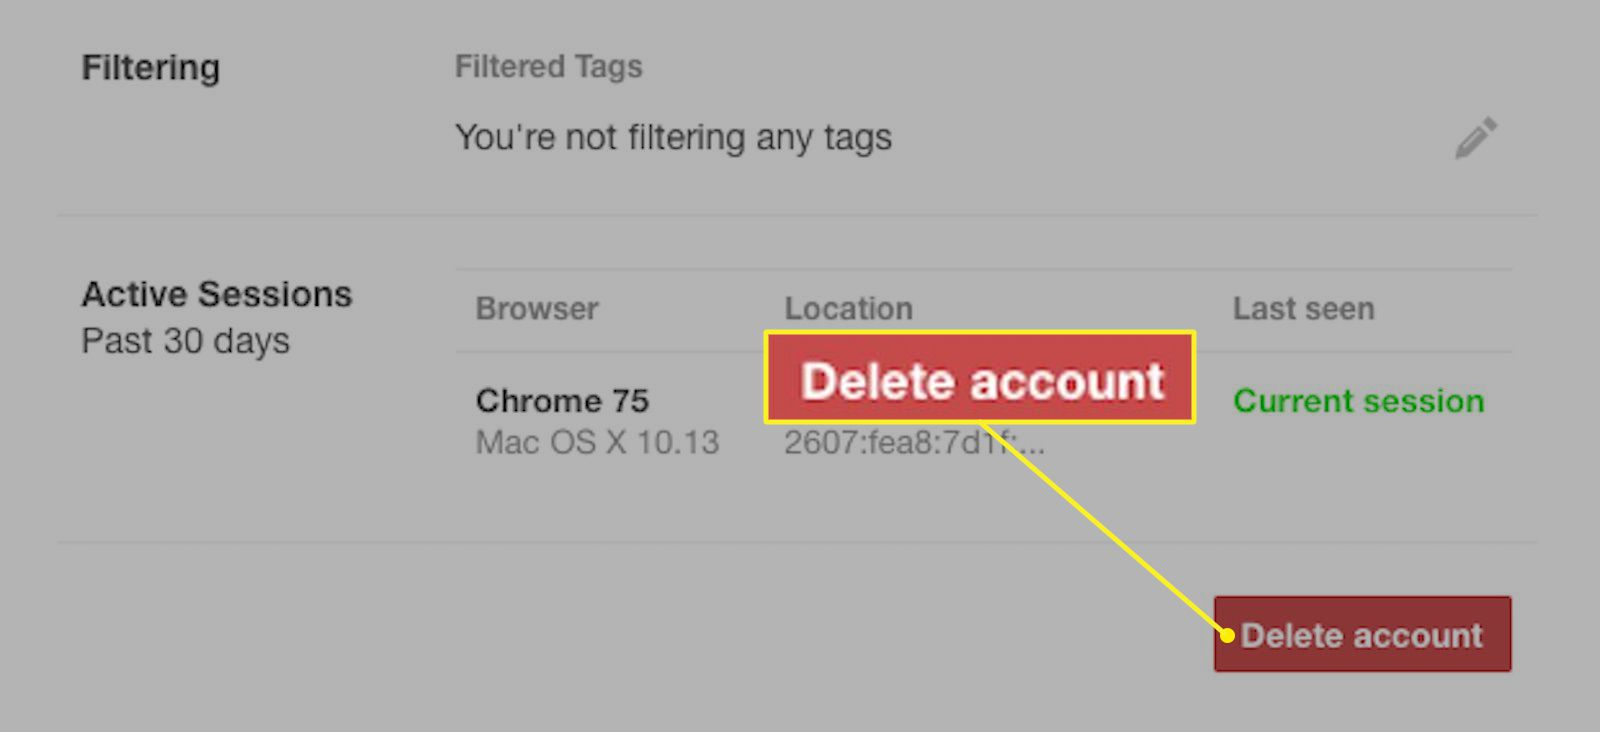 Tumblr.com with Delete account highlighted